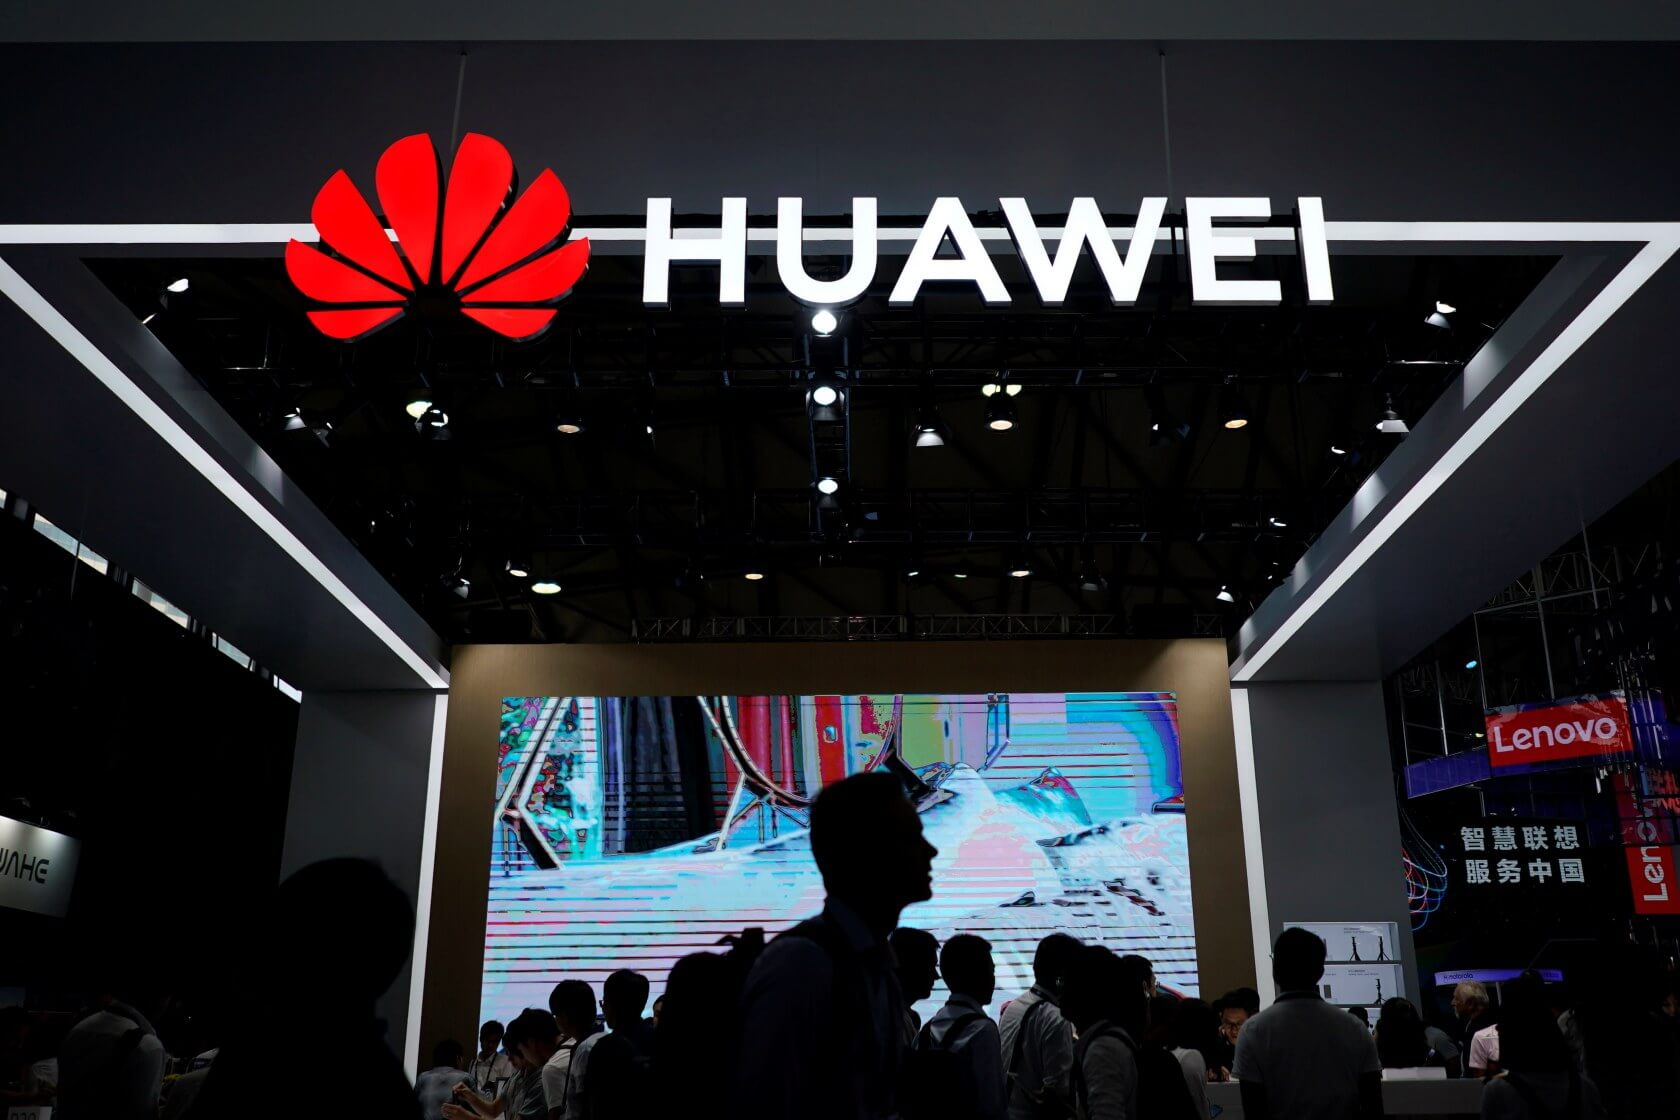 CIA reportedly says Huawei is funded by Chinese state security